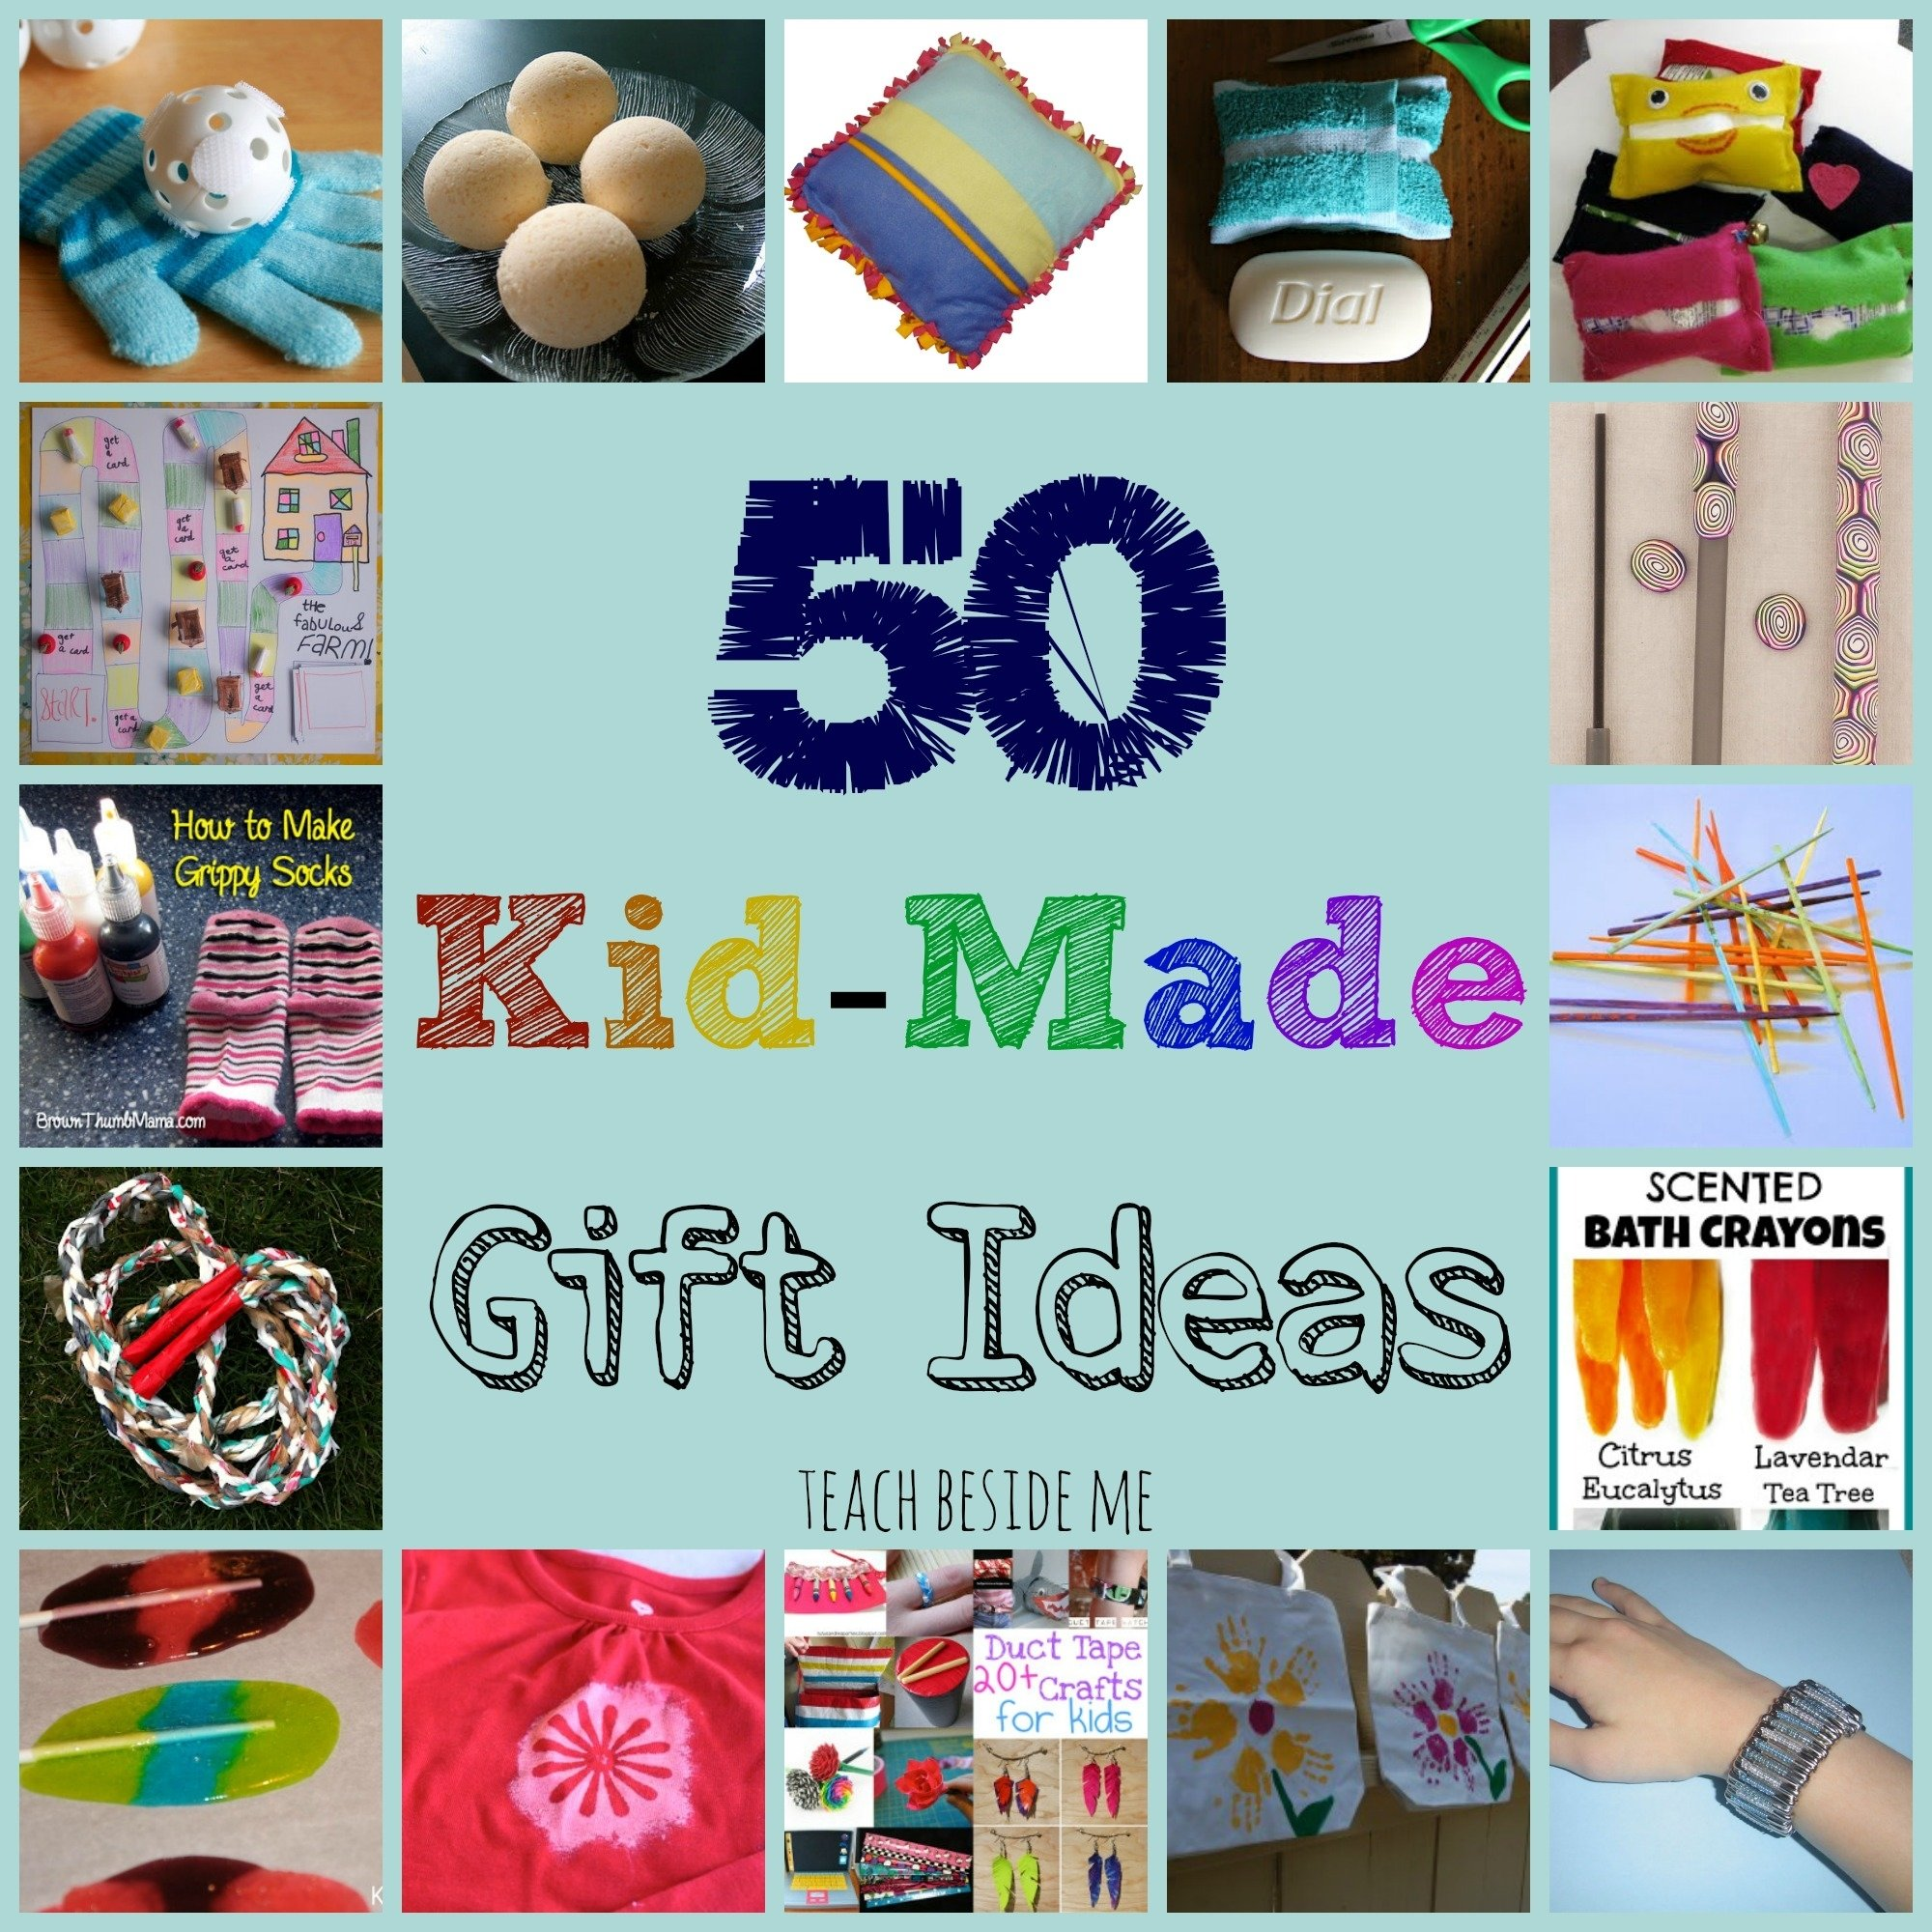 10 Attractive Holiday Gift Ideas For Kids kid made gift ideas for family teach beside me brothers sisters 2021